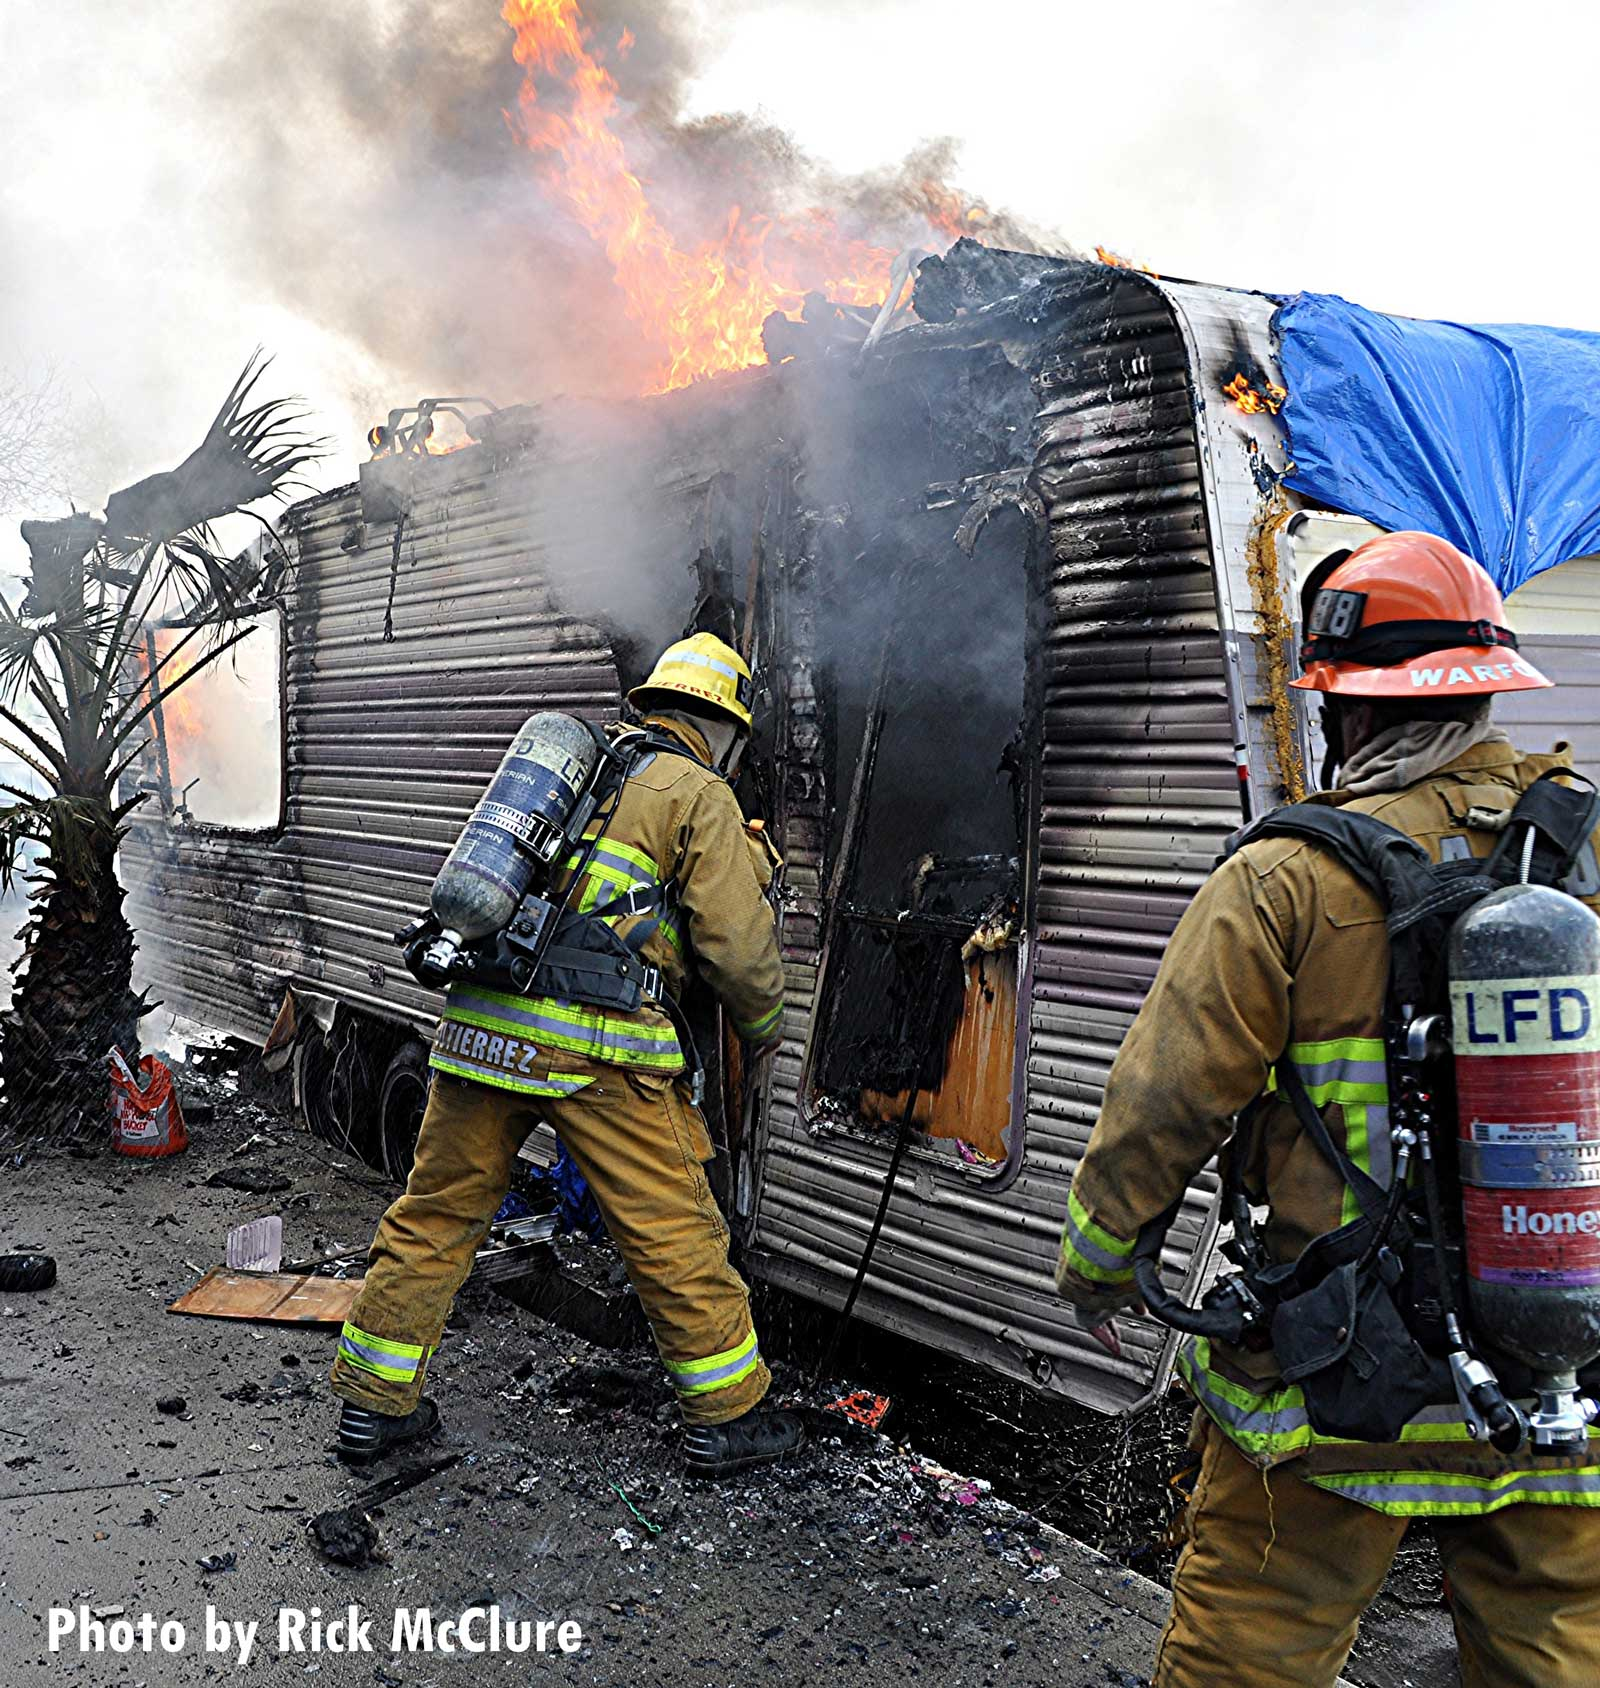 Firefighters at the scene of a trailer fire in Los Angeles